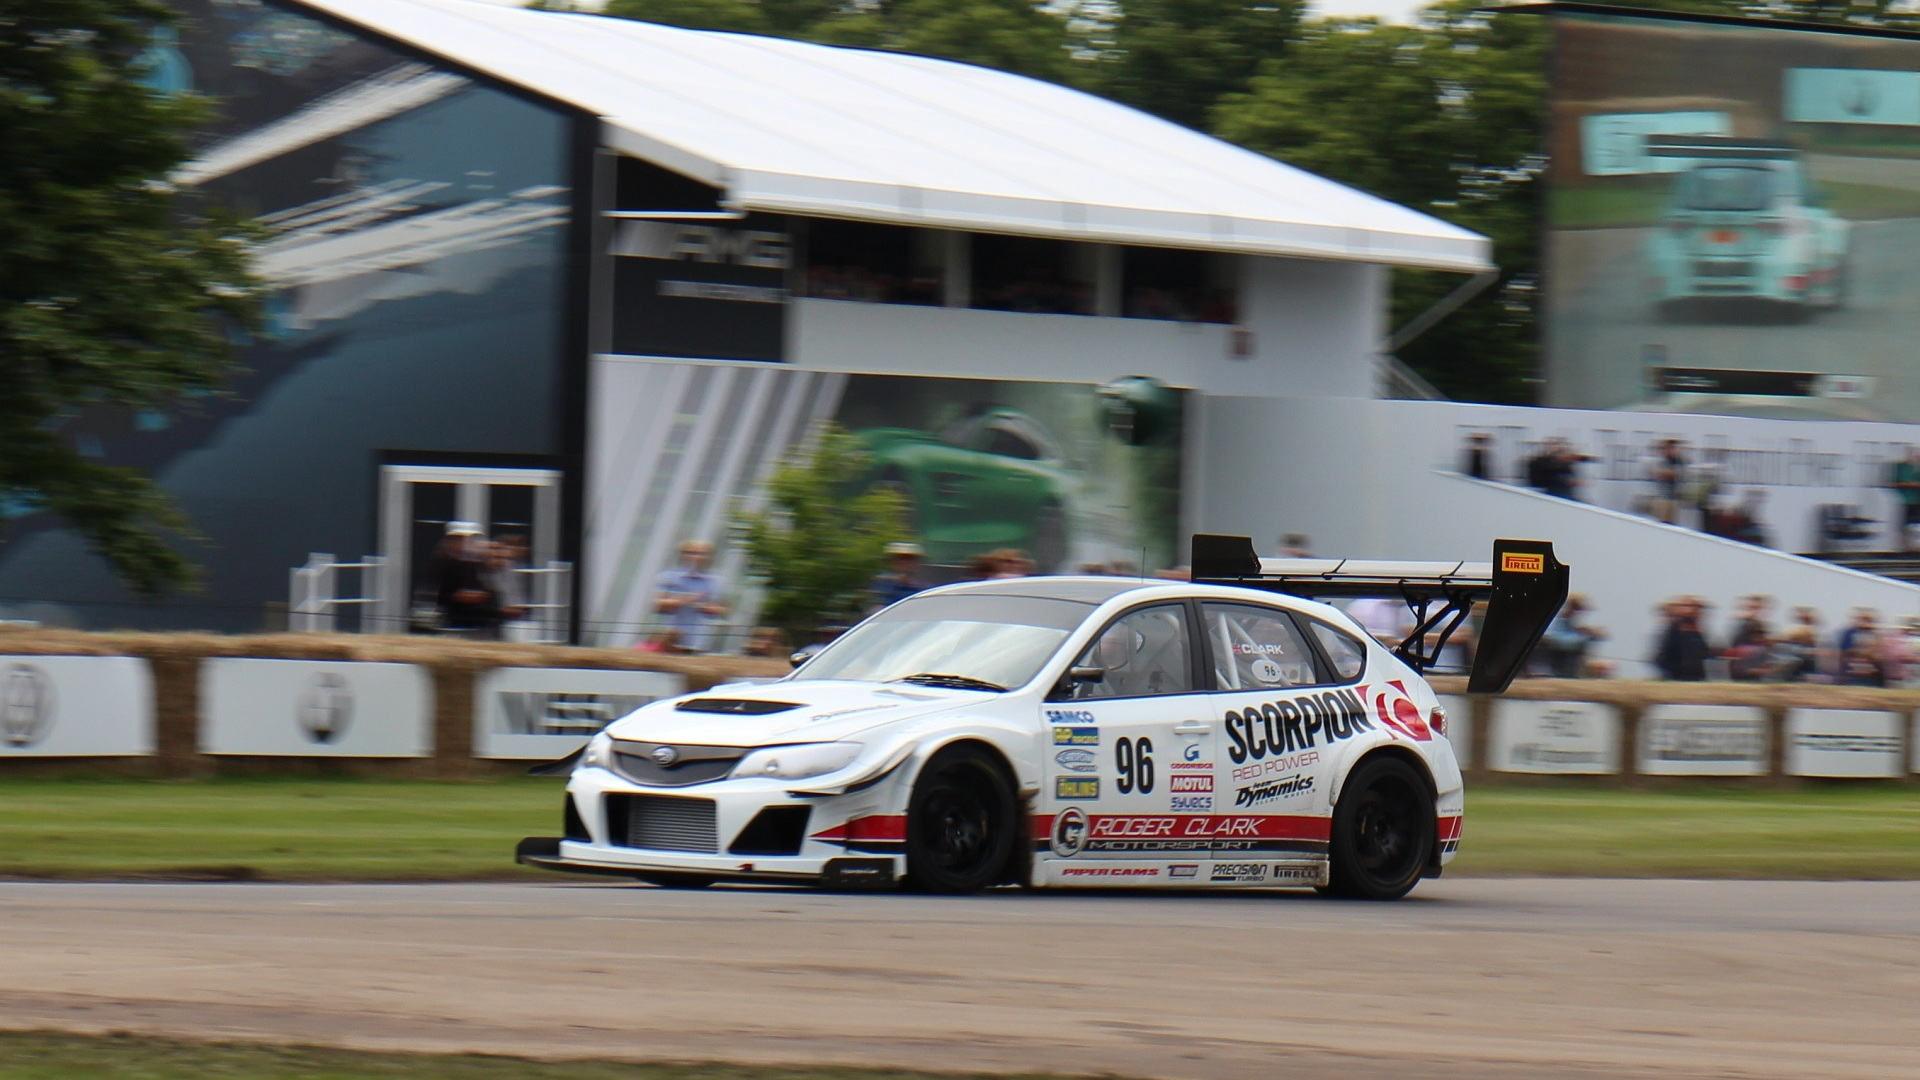 Subaru Impreza Gobstopper II Time Attack car, driver Olly Clark, at 2016 Goodwood Festival of Speed